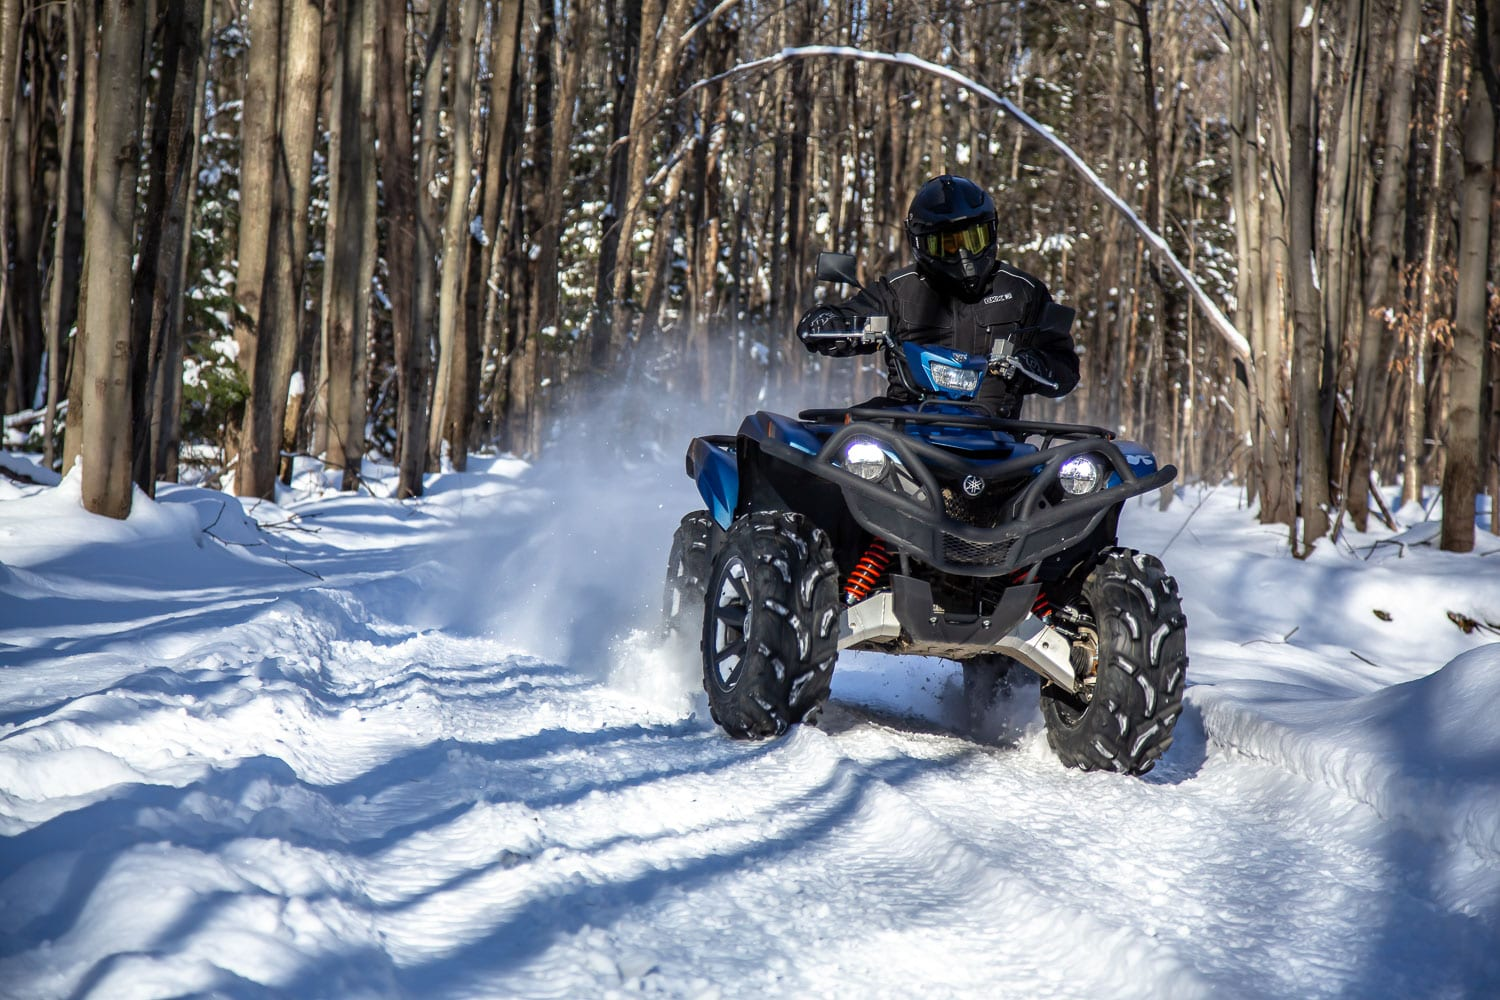 2019 Yamaha Grizzly SE Review | ATV Trail Rider Magazine